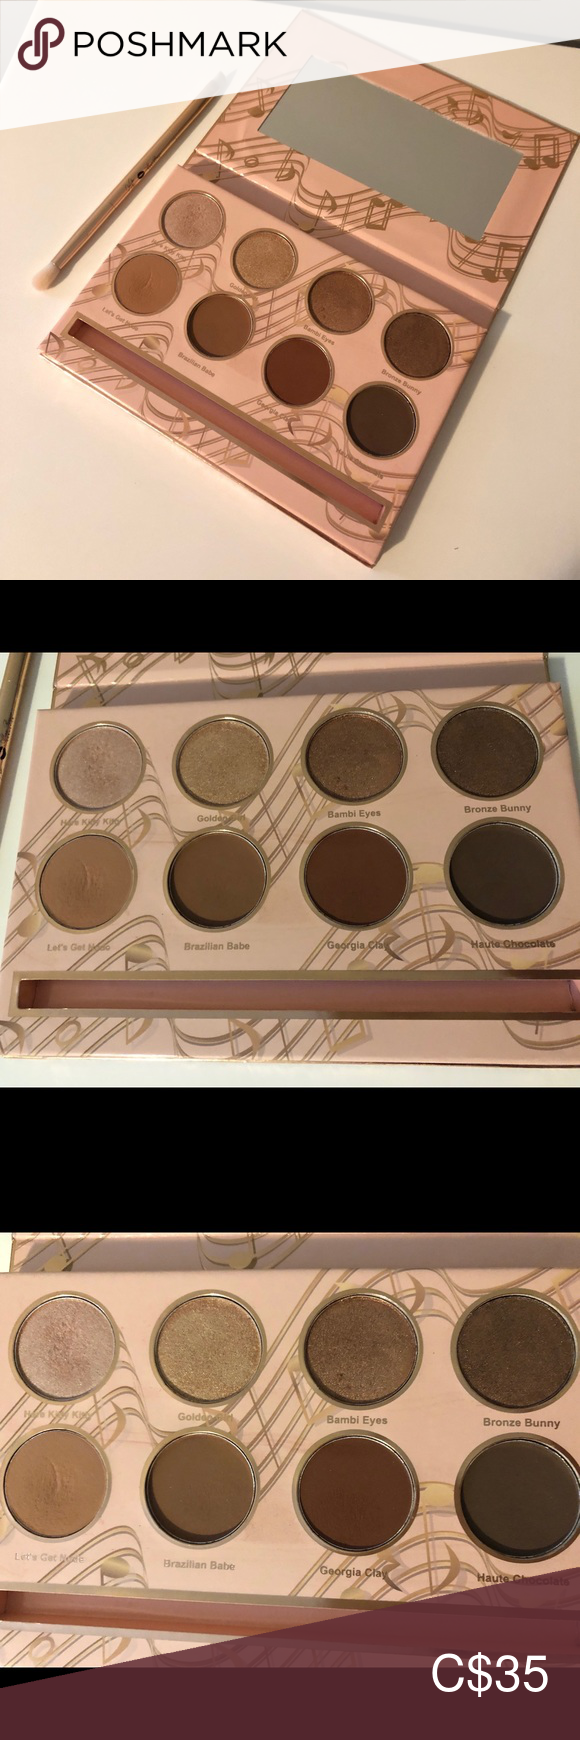 Jessie James Decker Eyeshadow Palette Jessie james